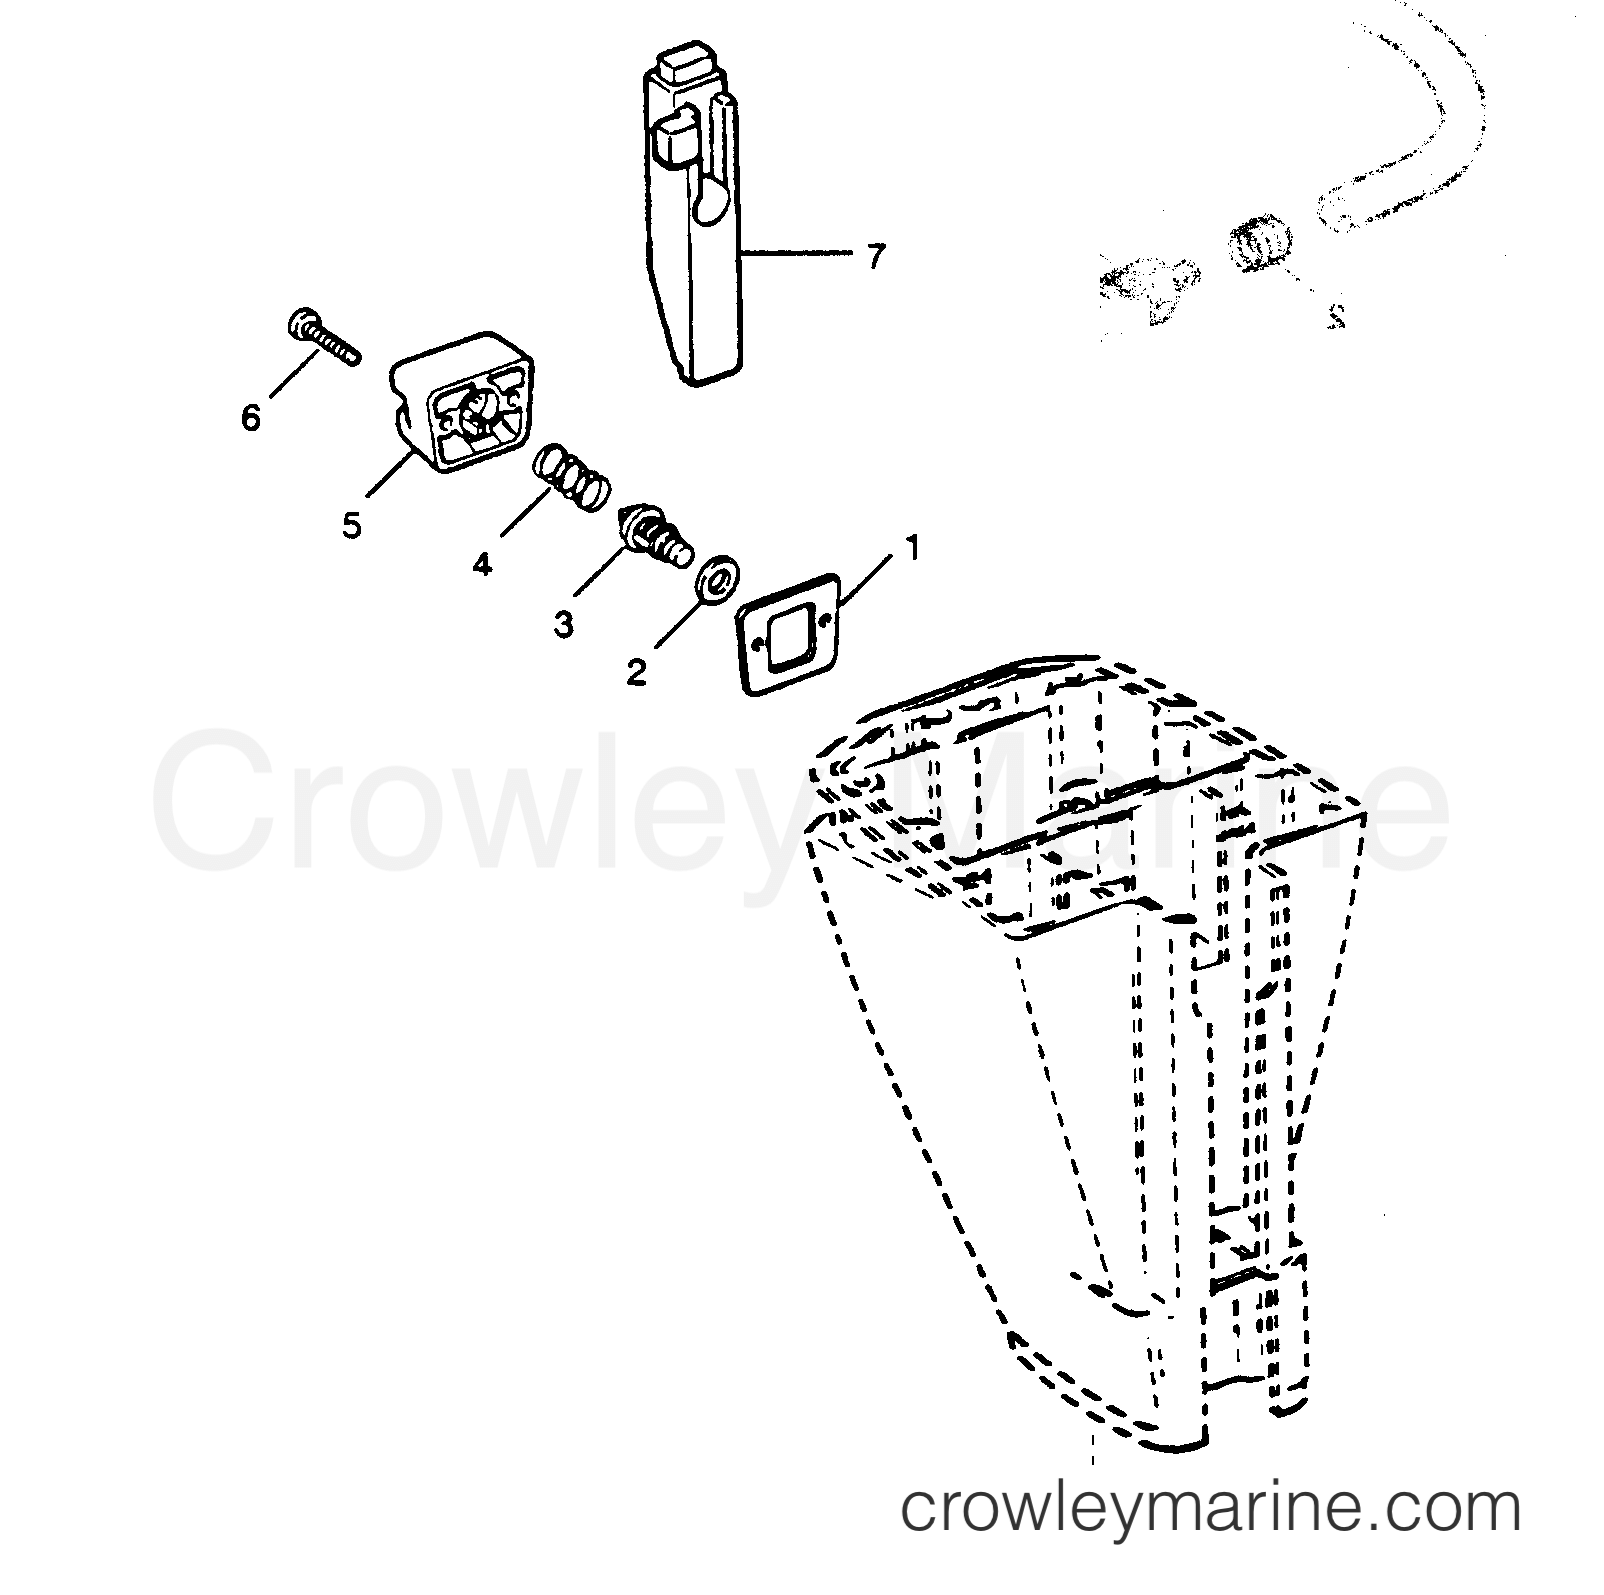 Force Outboard Thermostat Diagram Free Wiring For You Mercury Diagrams 1991 9 H0093s91a A Crowley Marine Rh Crowleymarine Com Air Conditioner